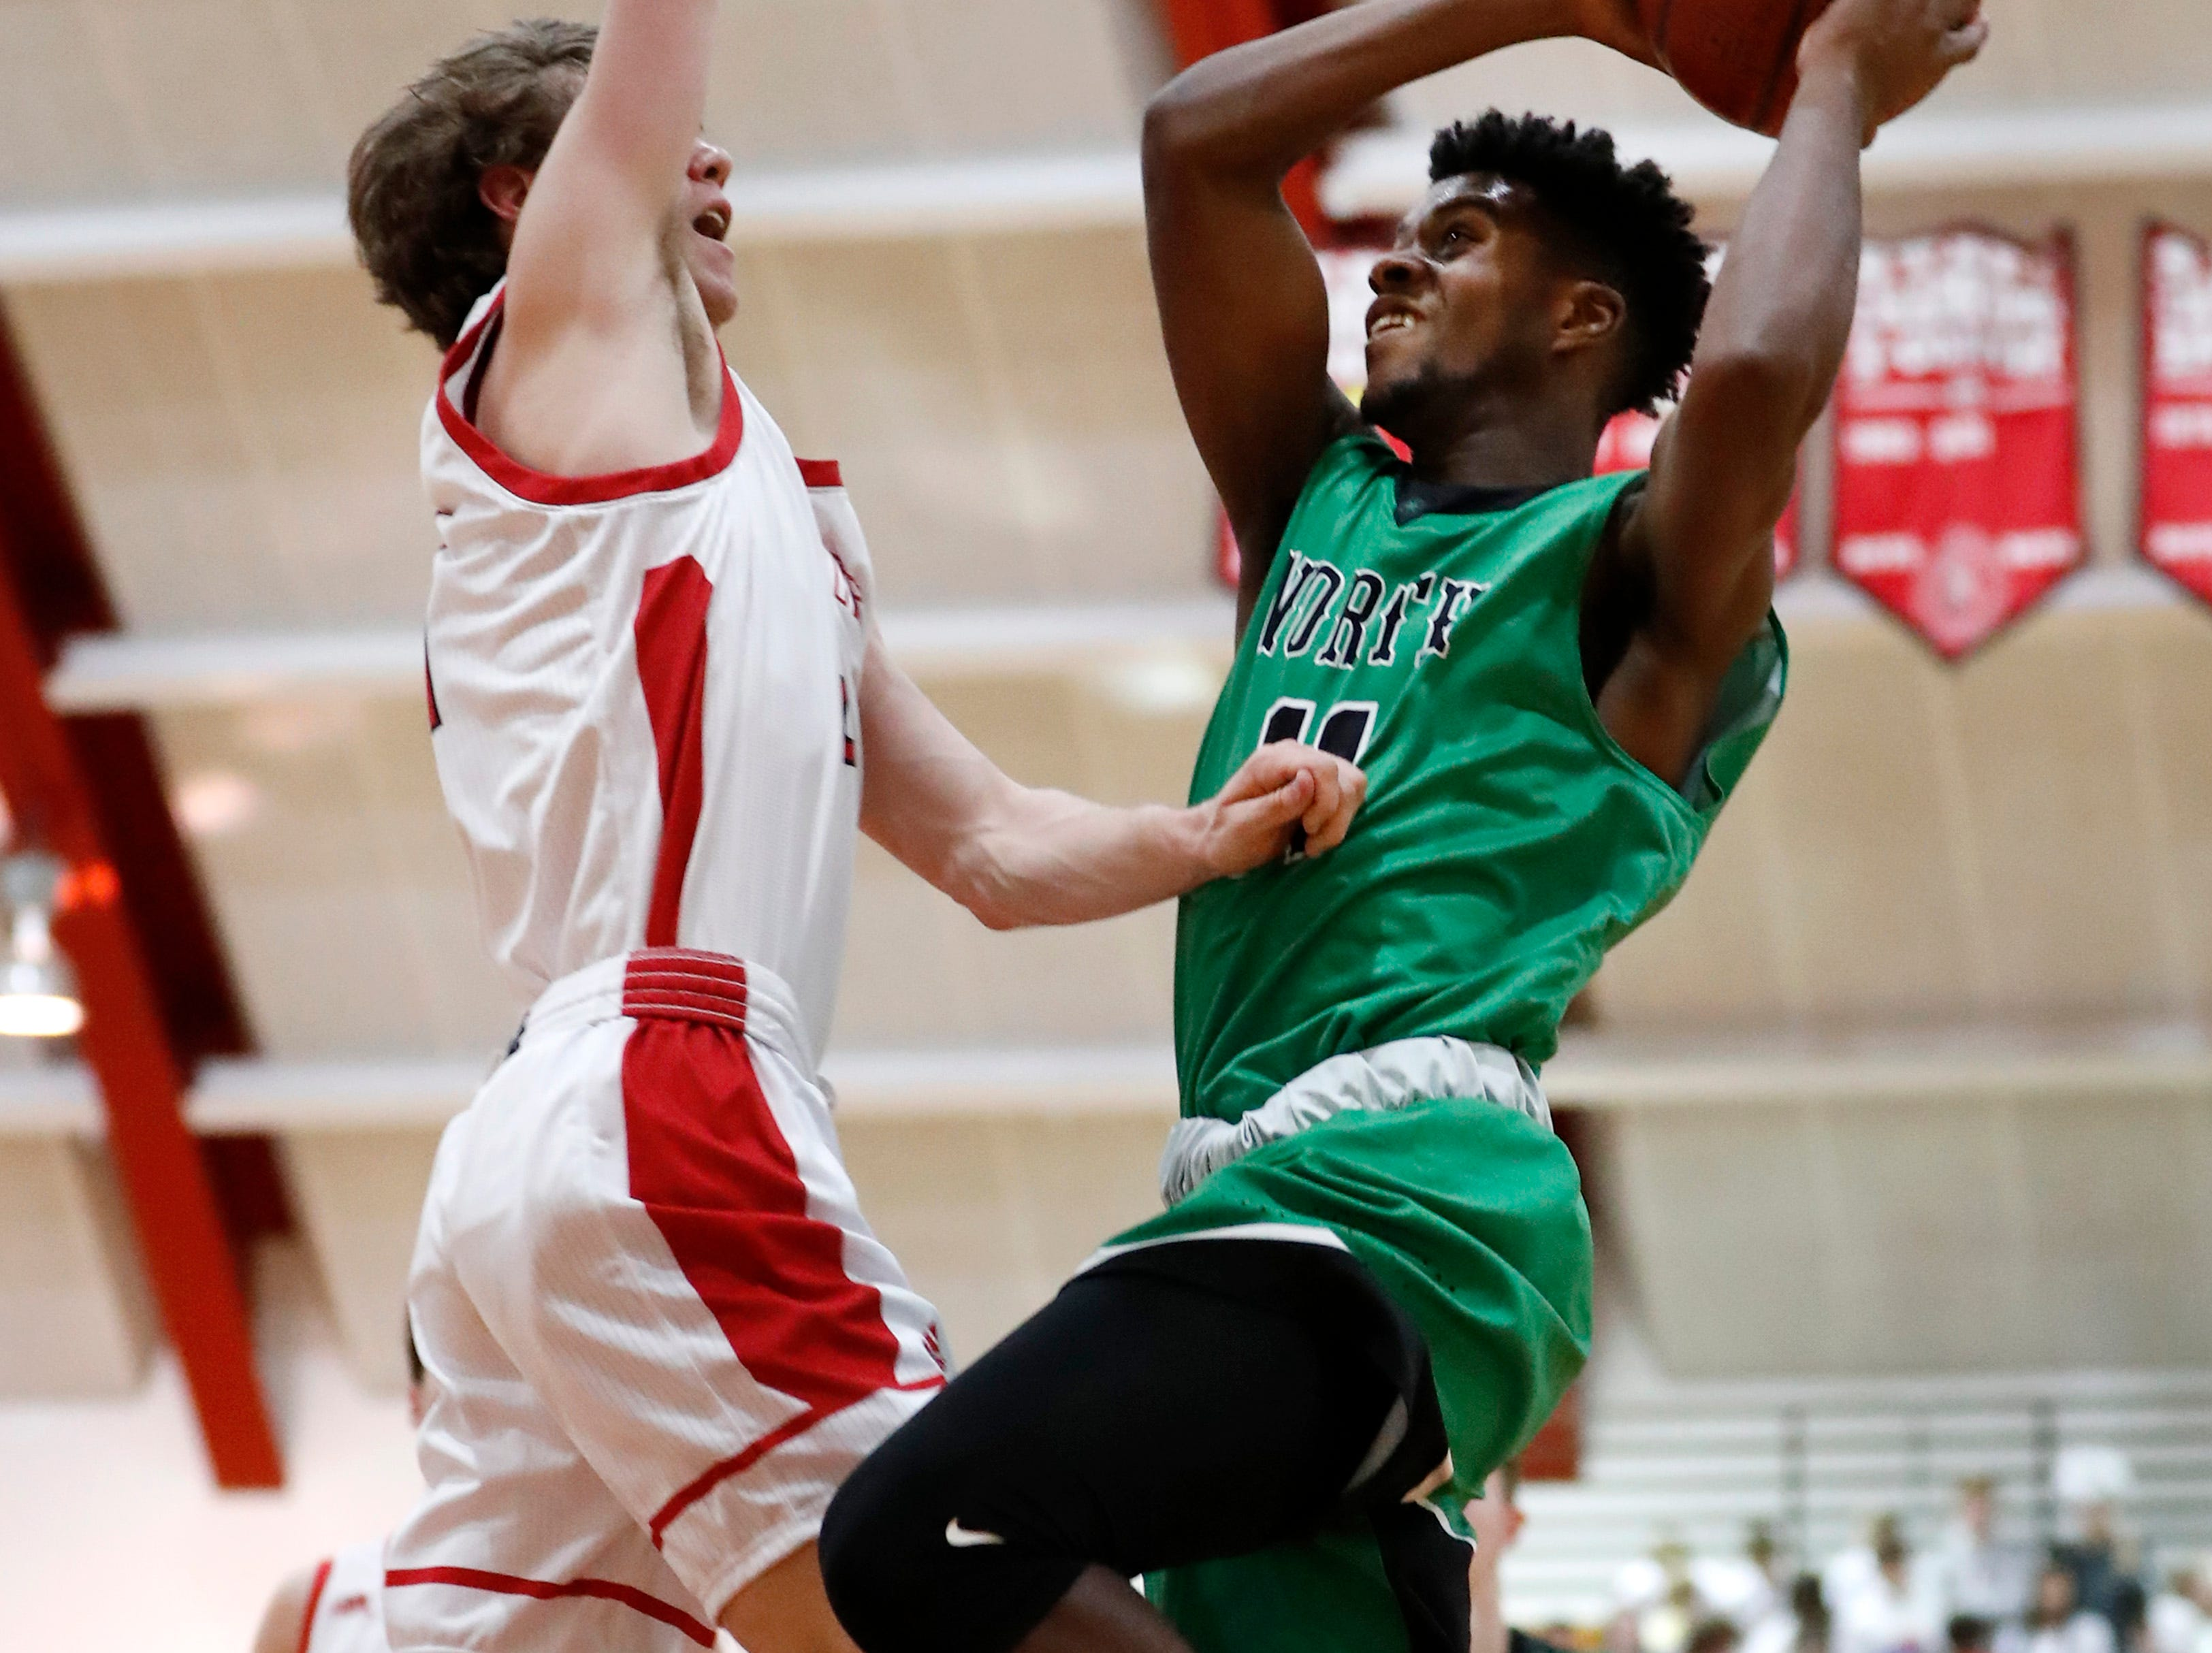 Oshkosh North High SchoolÕs Abraham Schiek goes for a layup while covered by Neenah High SchoolÕs Bryce Henderson Friday, Jan. 18, 2019, in Neenah, Wis. Oshkosh North High School defeated Neenah High School 63-60.